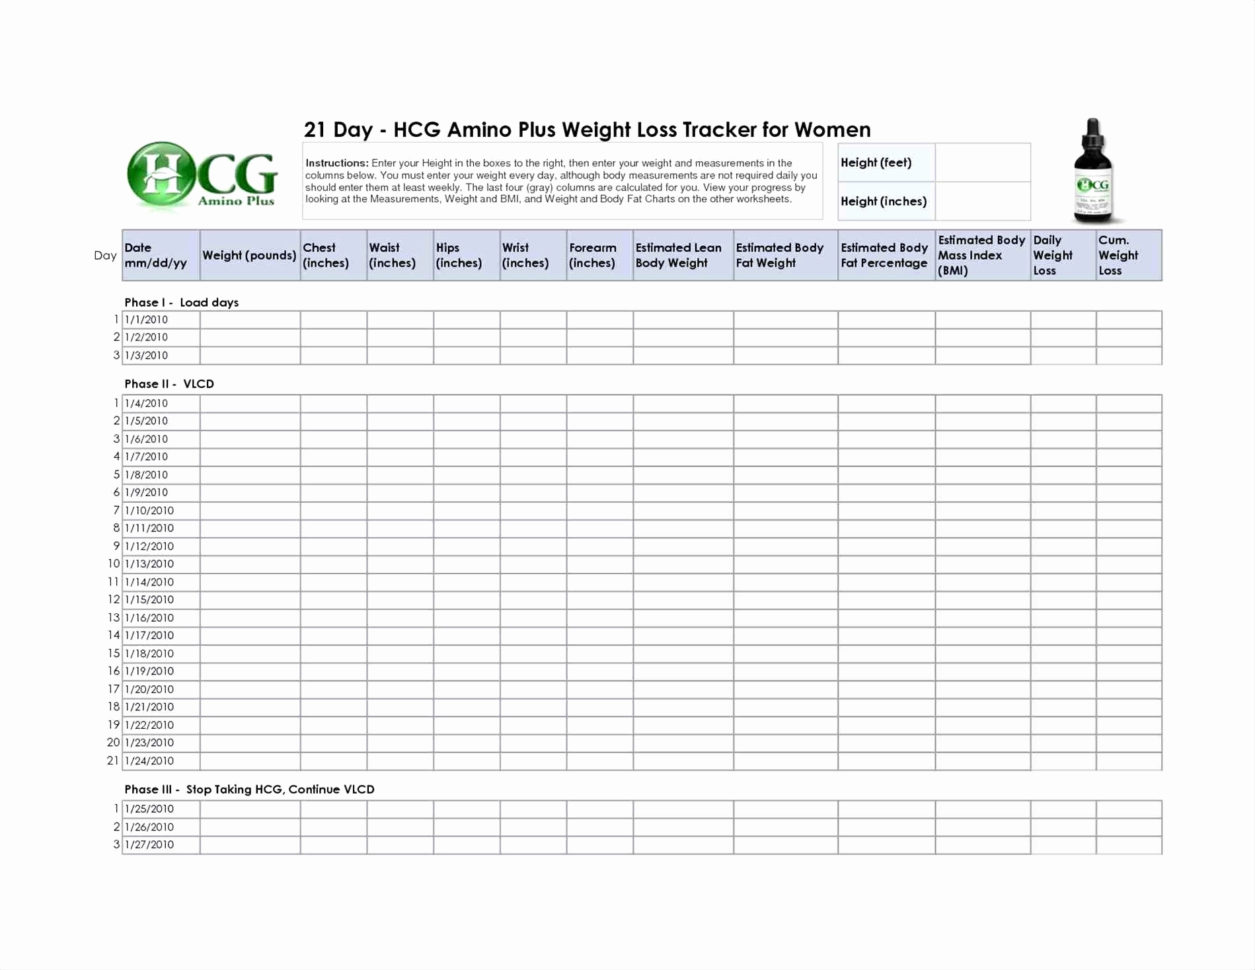 Recruiting Tracking Spreadsheet Excel Within Recruitment Tracking Spreadsheet Tracker Excel Template Lovely Sheet